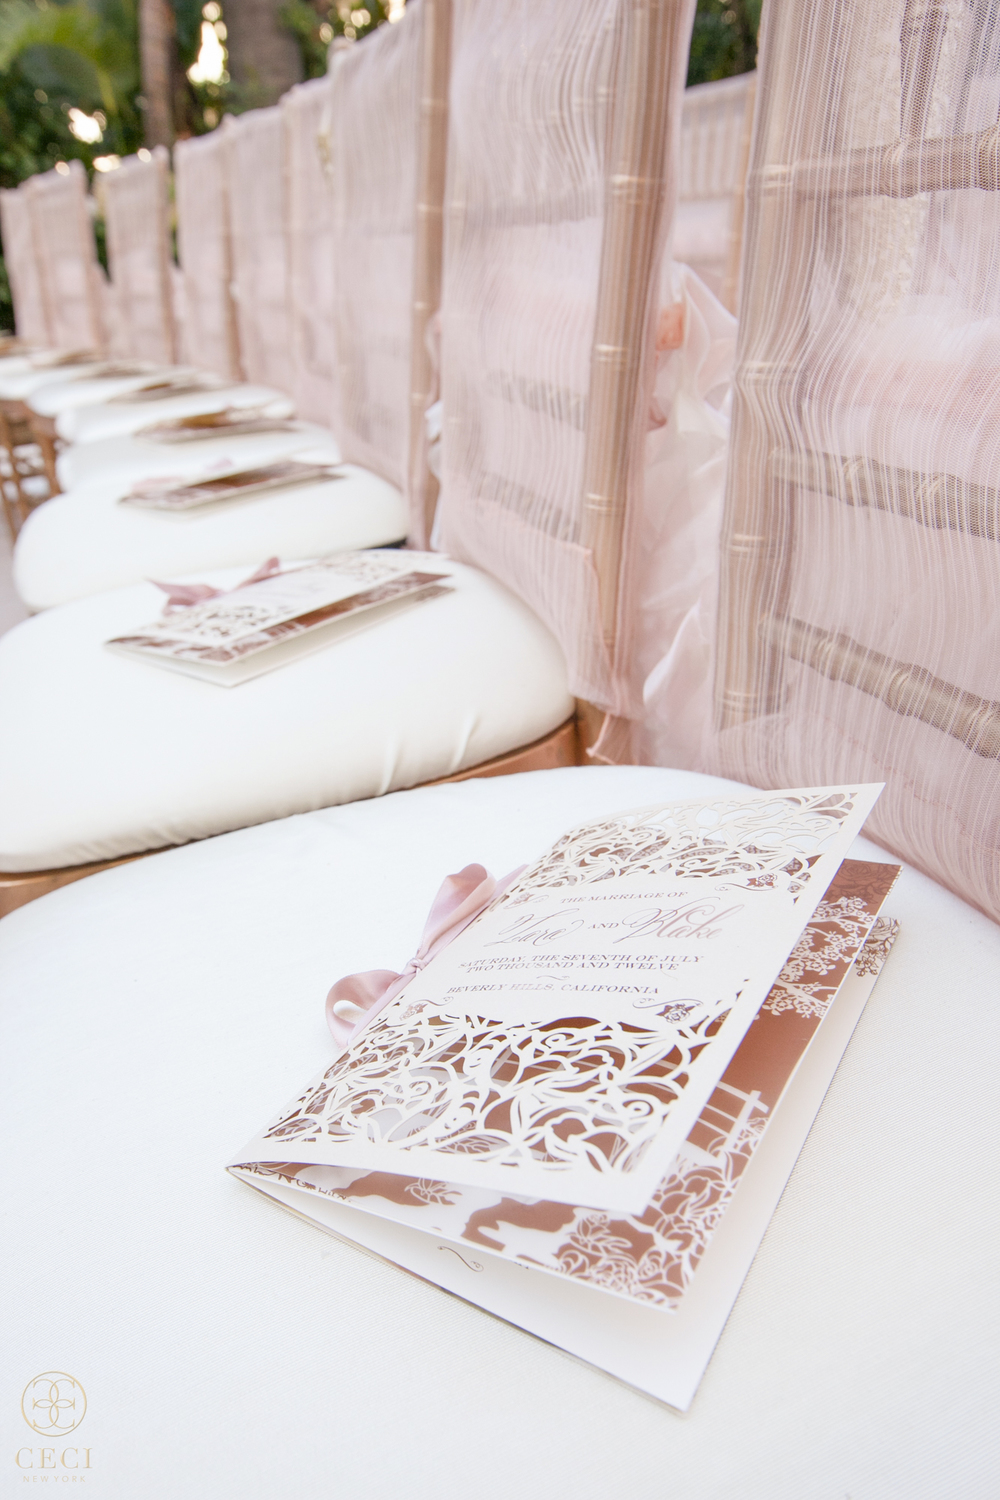 rose_gold_pink_romantic_real_wedding_roses_inspiration_cecinewyork_cecistyle_v152_1-8.jpg